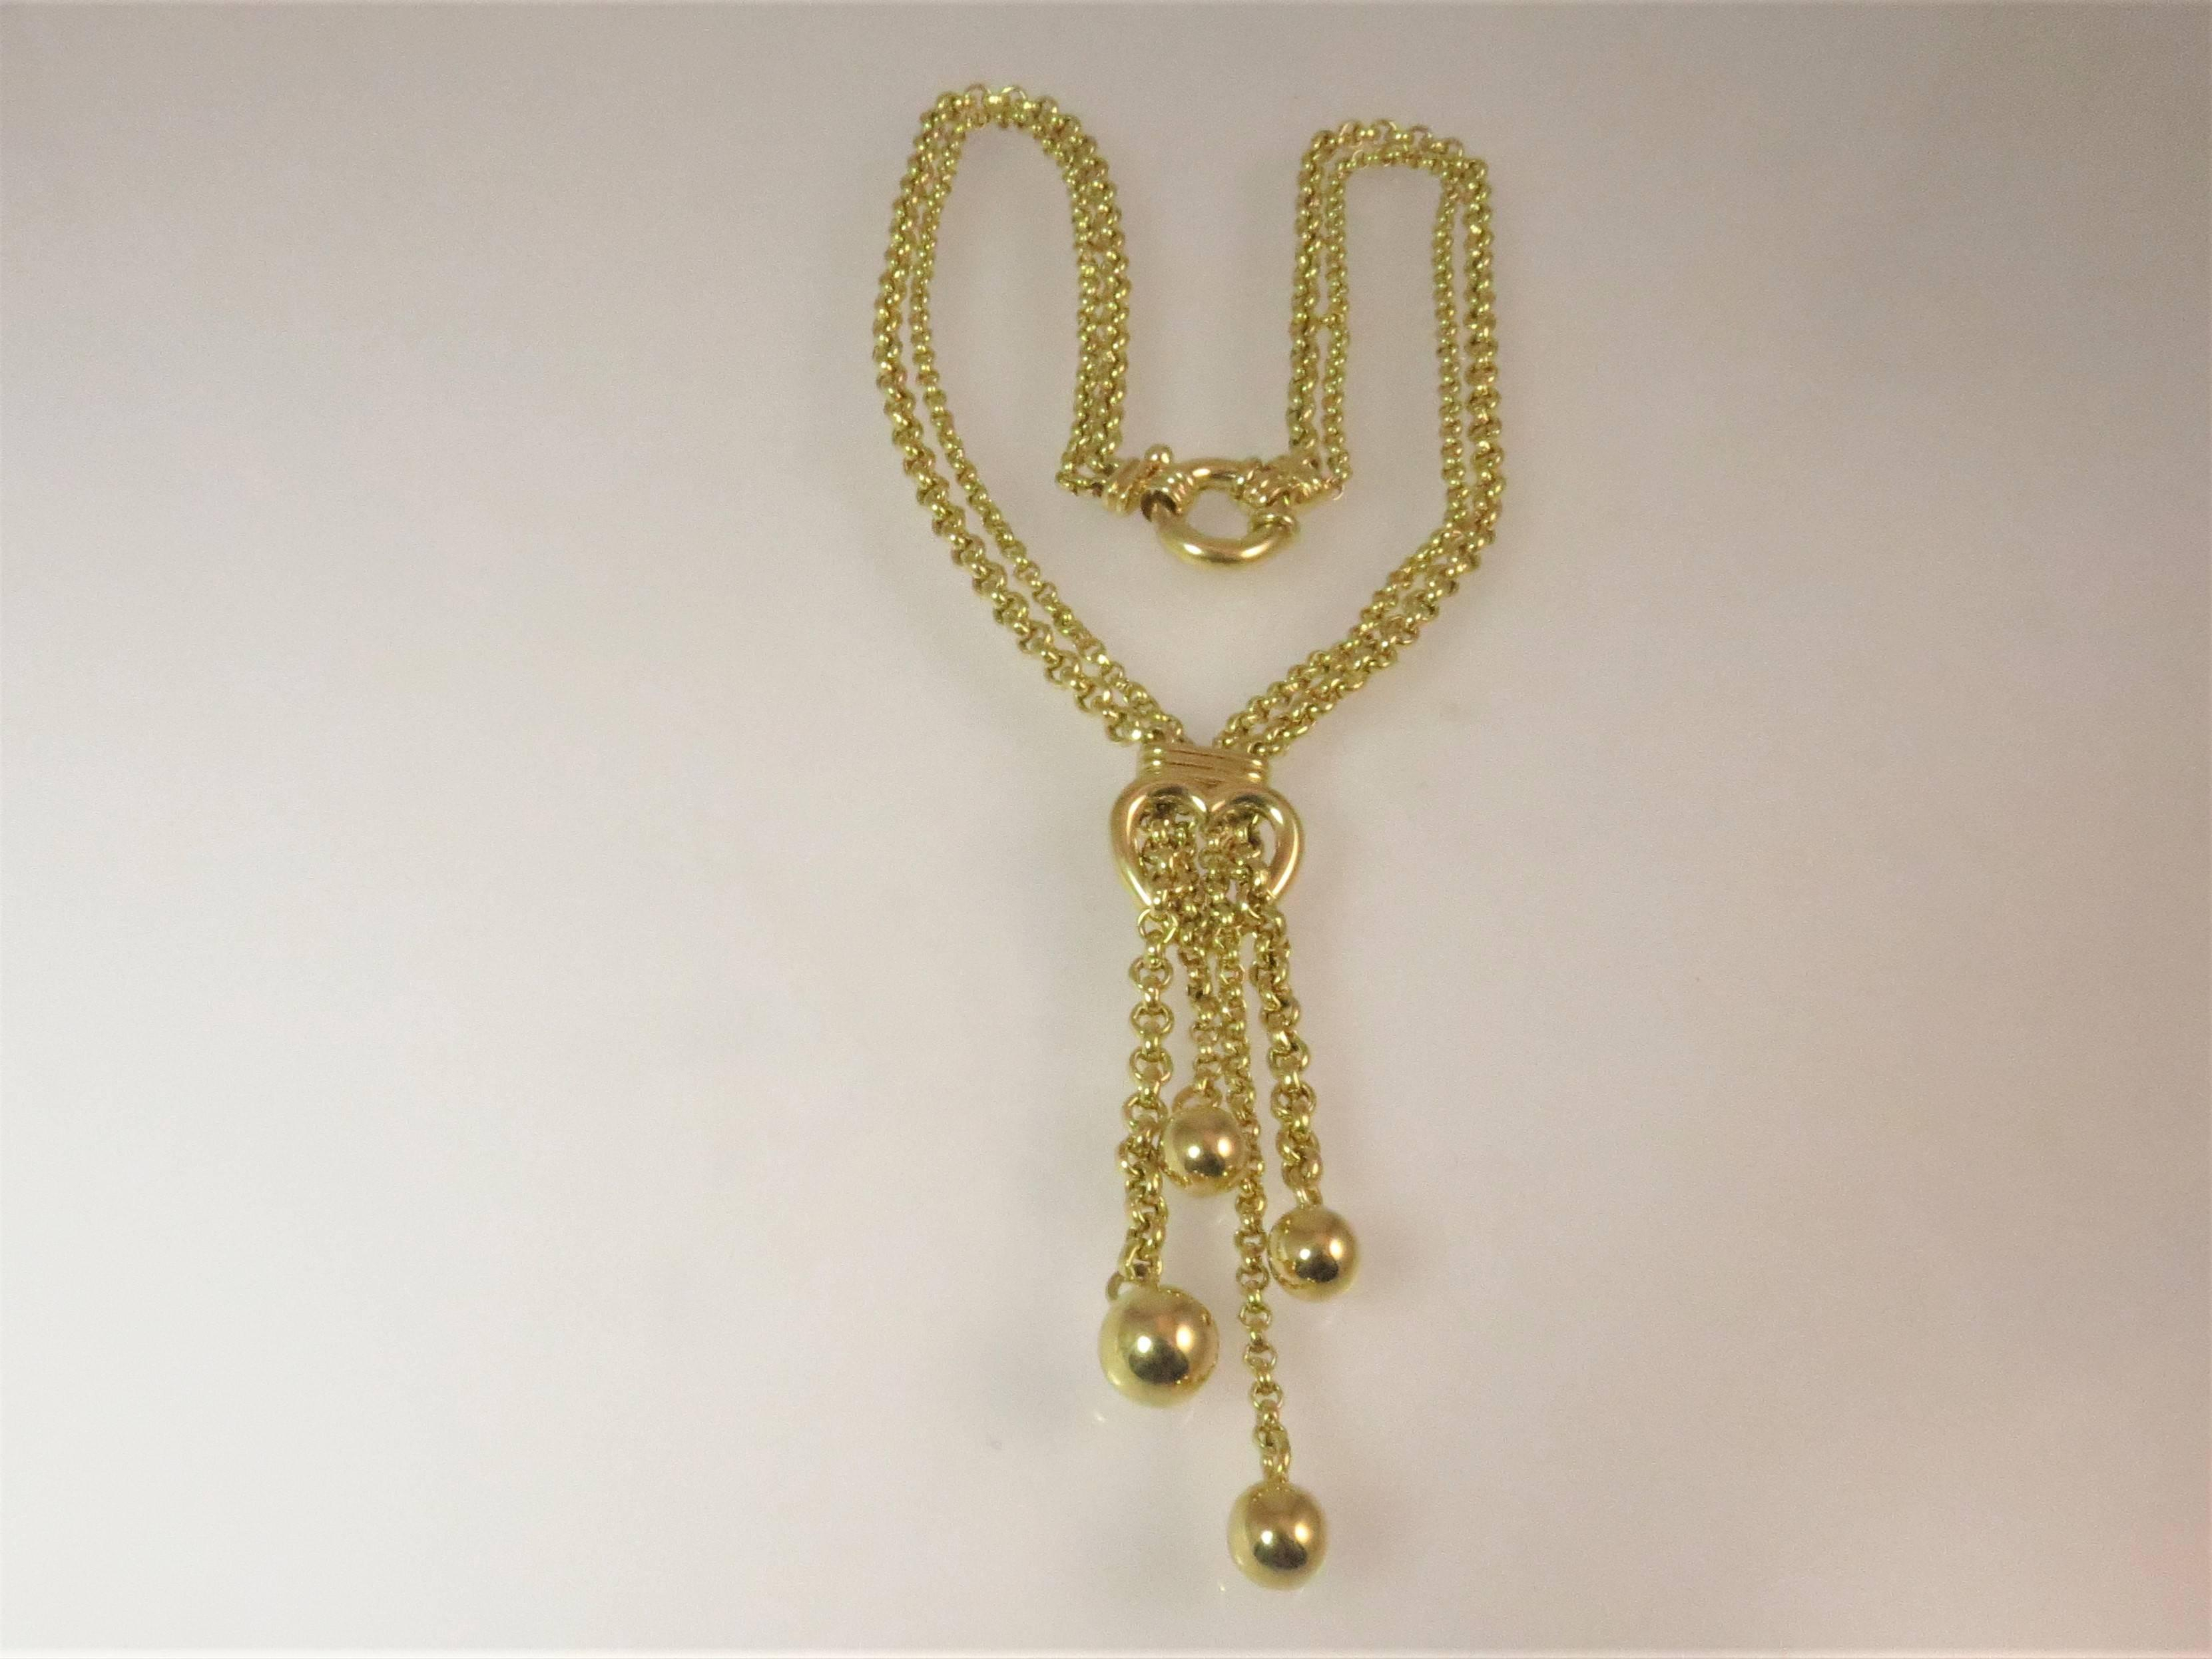 18 Karat Yellow Gold Double Strand Tassel Link Necklace With Heart Design Regarding Recent Ornate Hearts Tassel Necklaces (View 1 of 25)